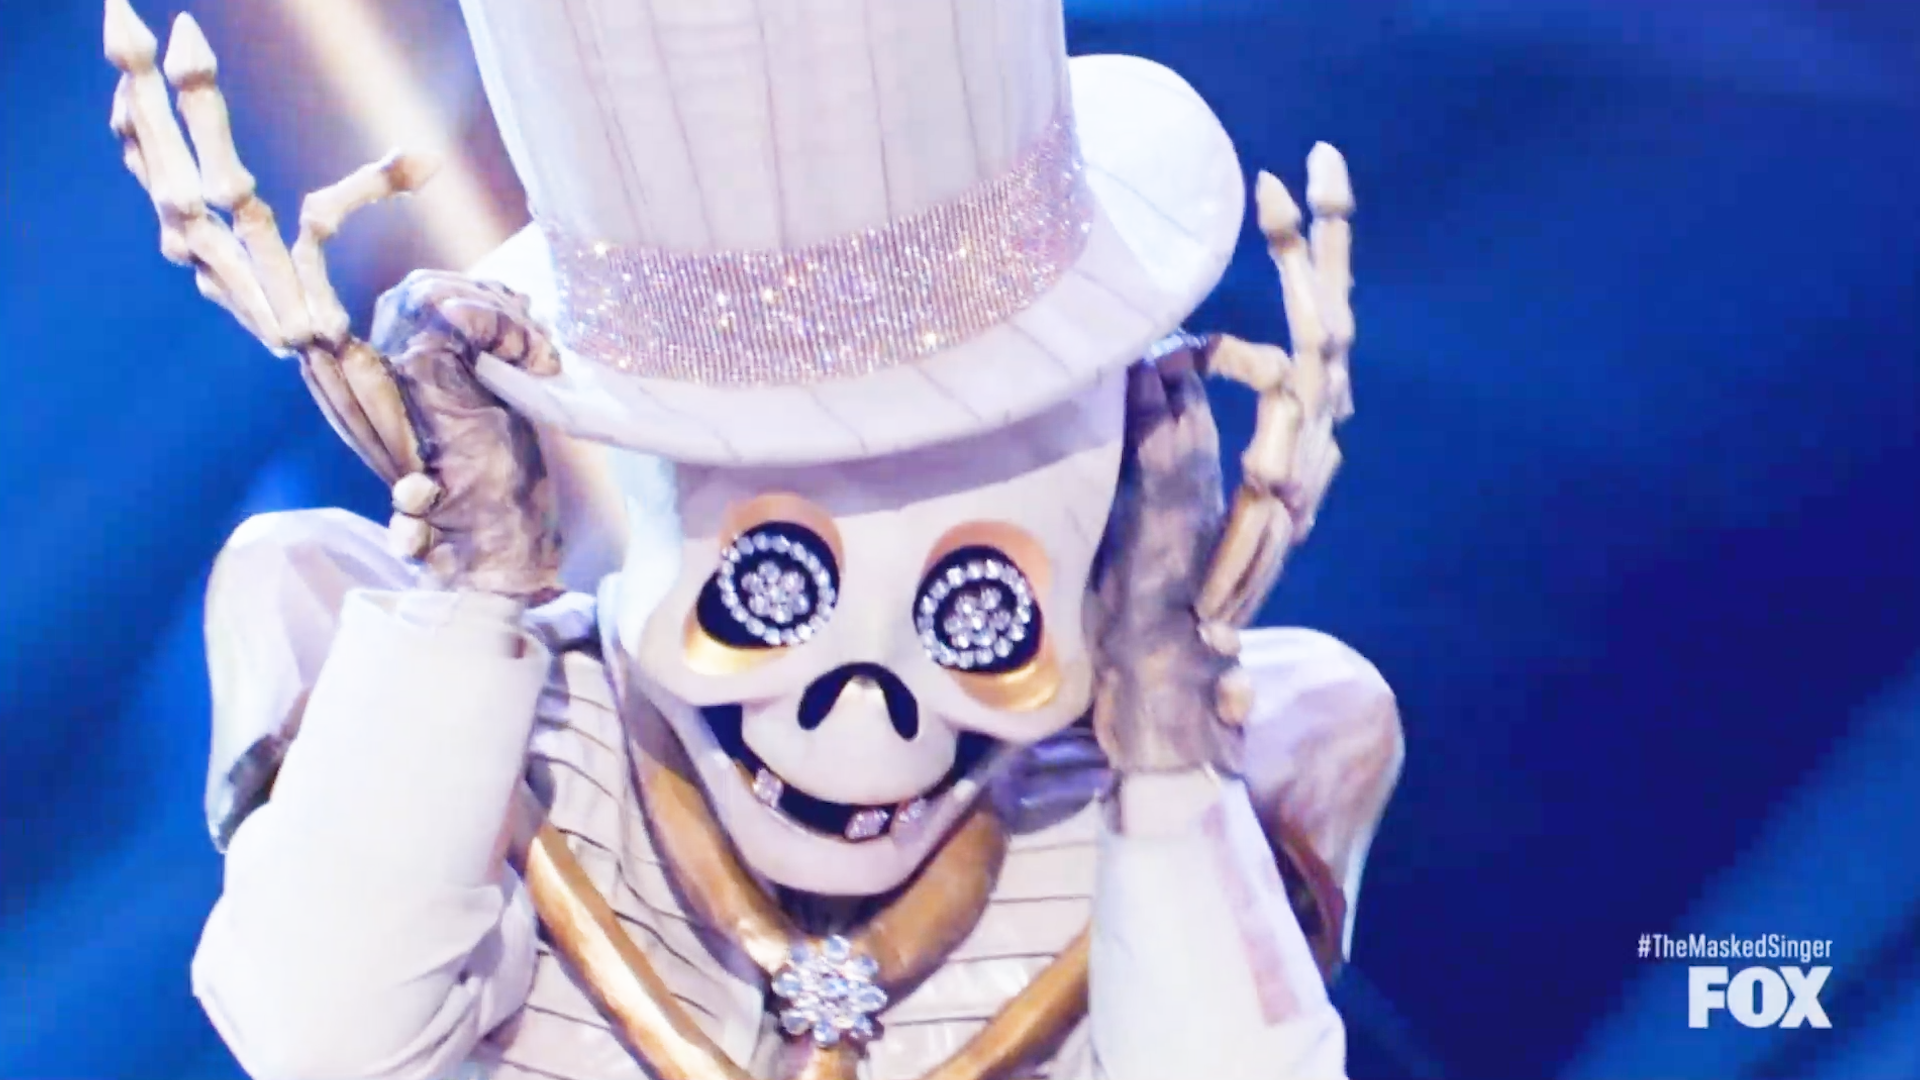 'The Masked Singer': The Skeleton gets buried - see who was under the sparkly skull mask